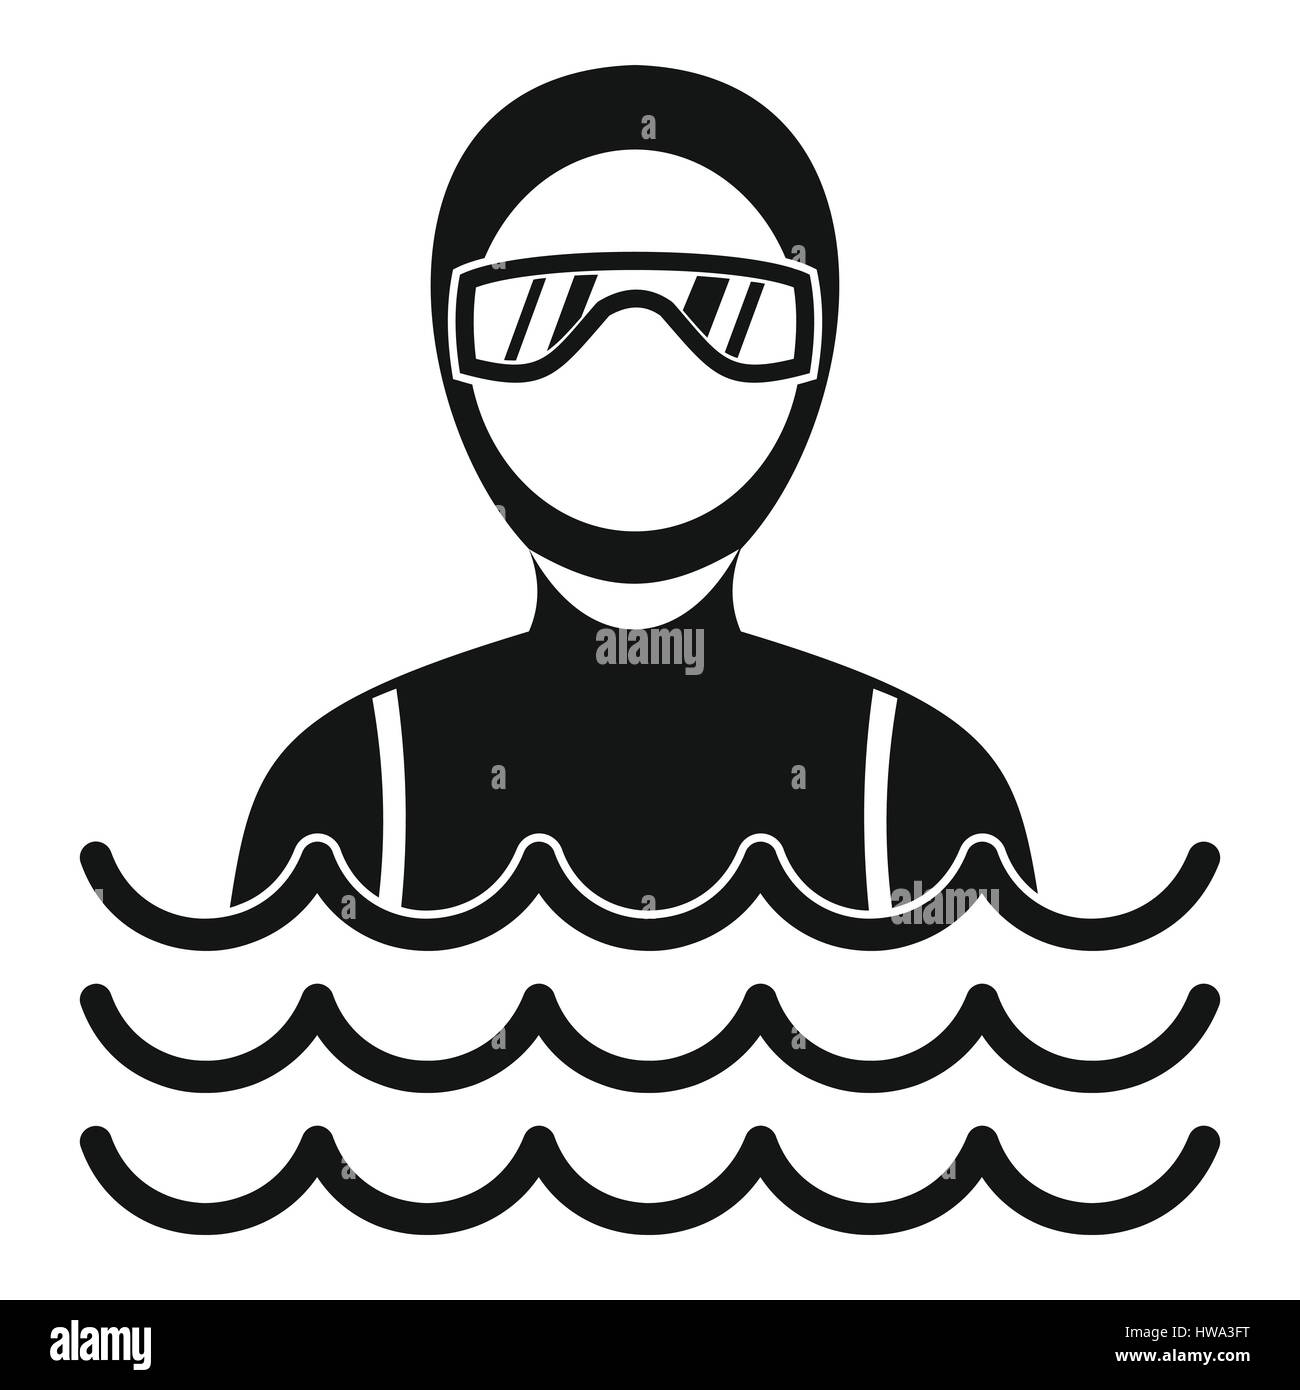 Scuba diver man in diving suit icon simple style stock vector art scuba diver man in diving suit icon simple style publicscrutiny Gallery